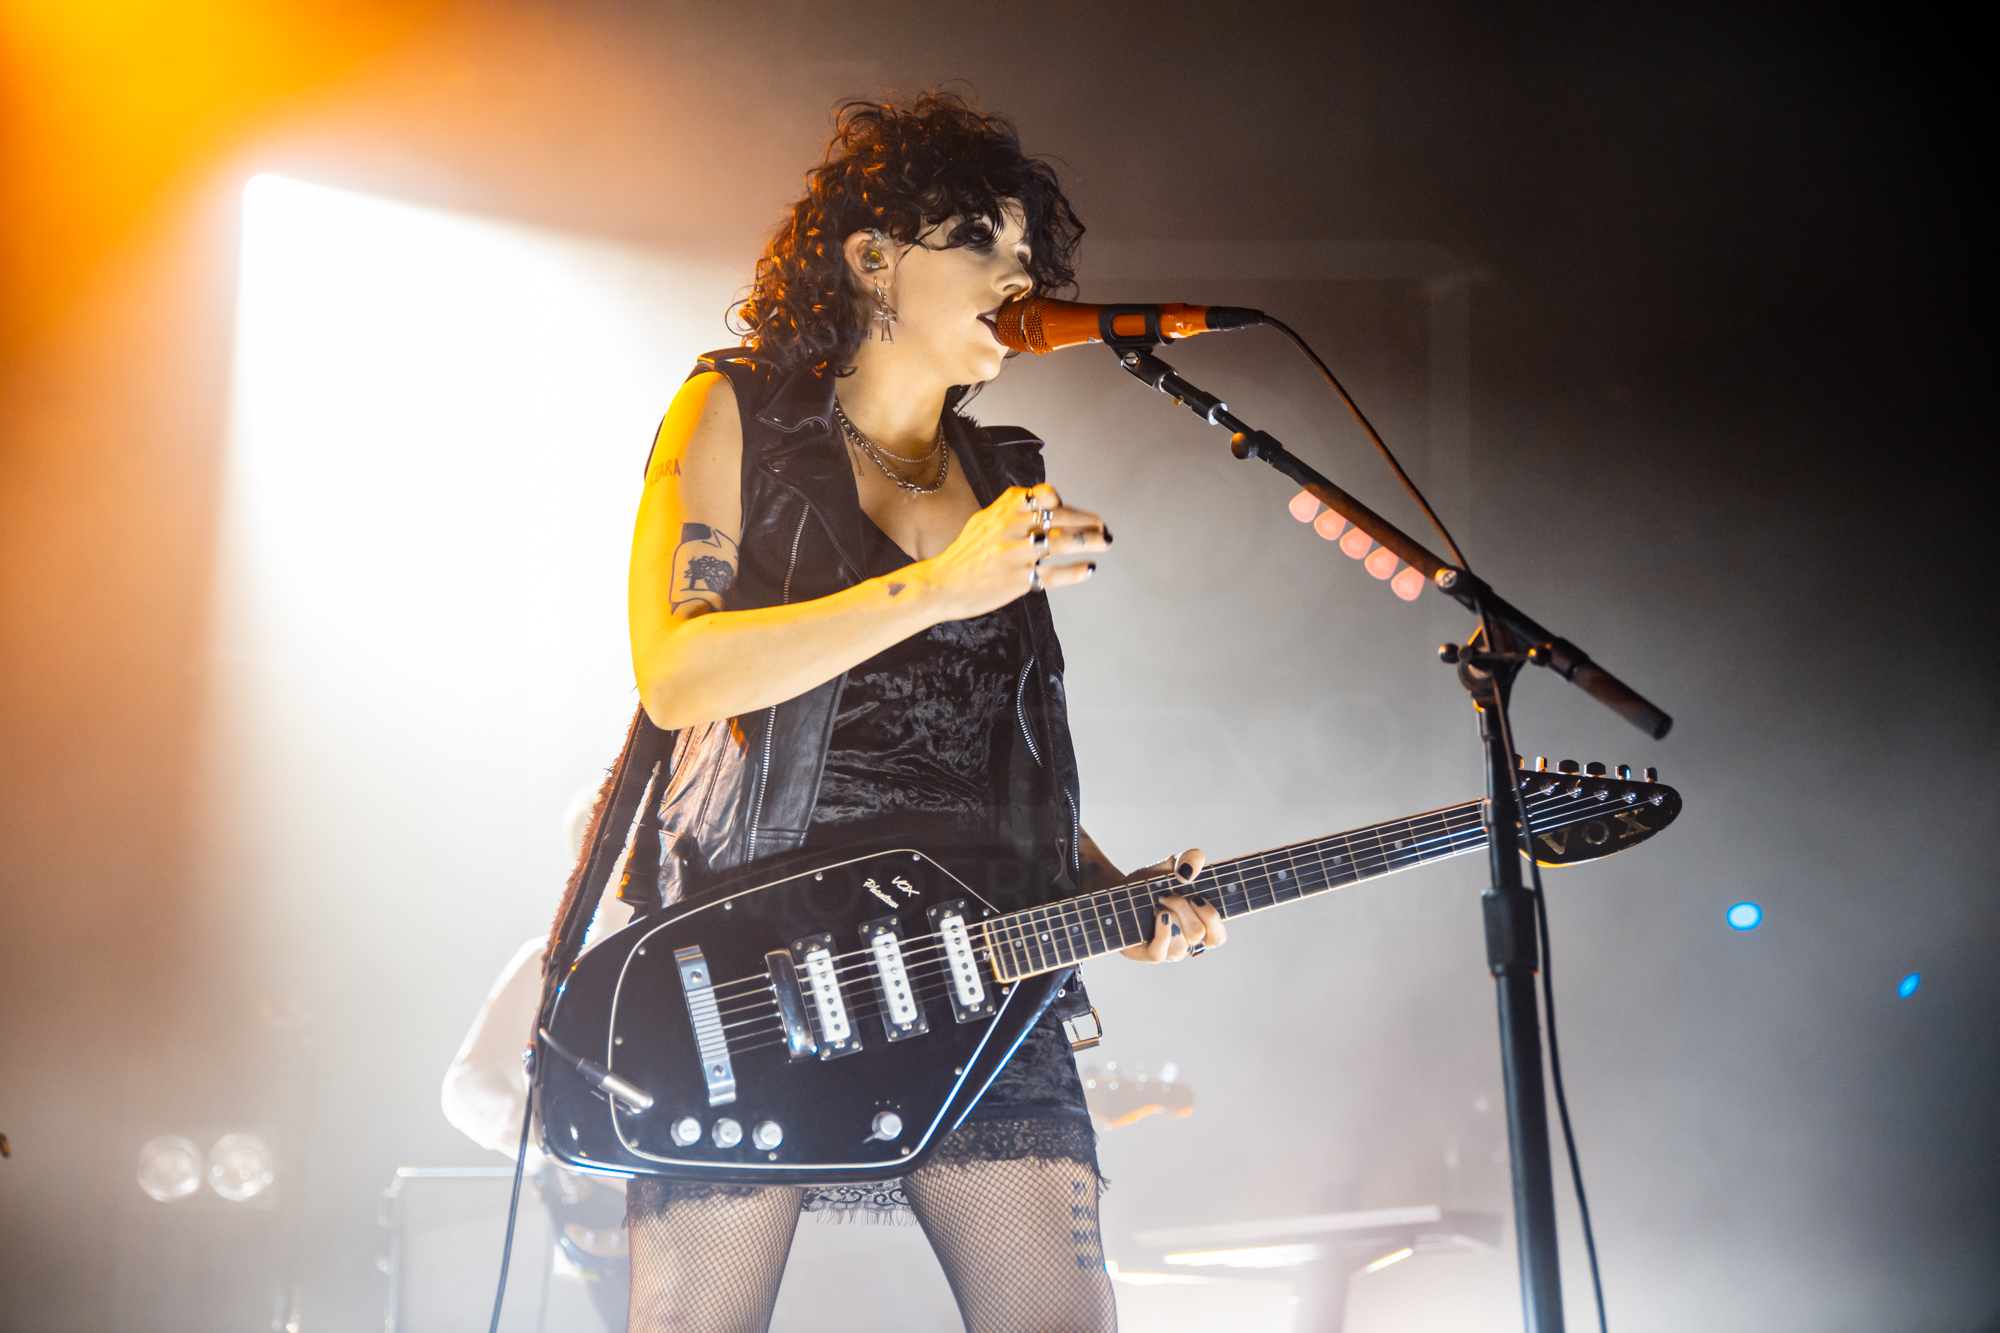 PALE WAVES PERFORMING AT MANCHESTER ACADEMY - 27.09.2019  PICTURE BY: | KIRSTY LEANNE PHOTOGRAPHY